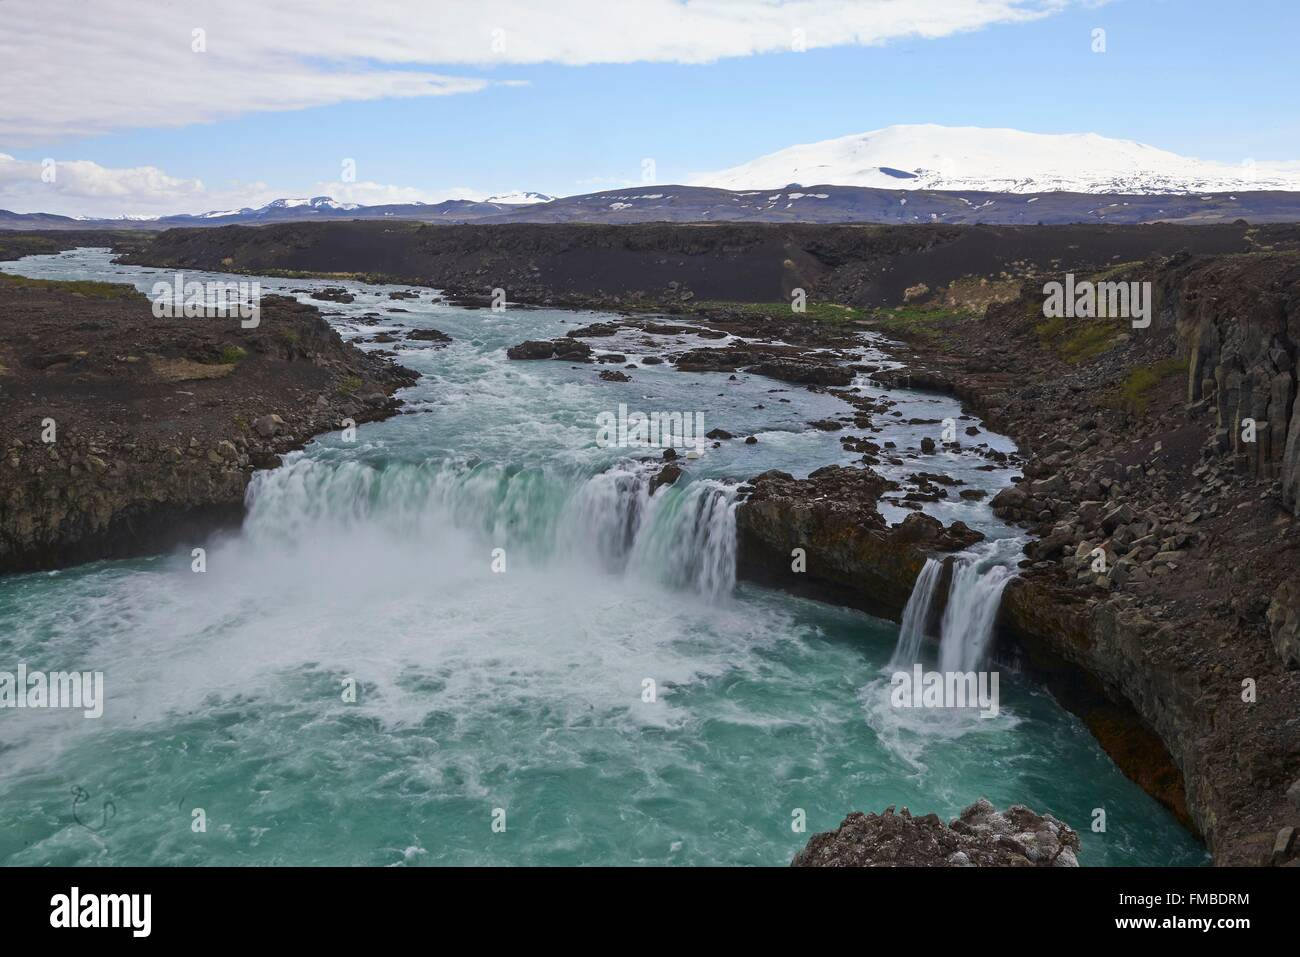 Iceland, Golden Circle, wild landscape with lava field, Hekla volcano, river and waterfall - Stock Image